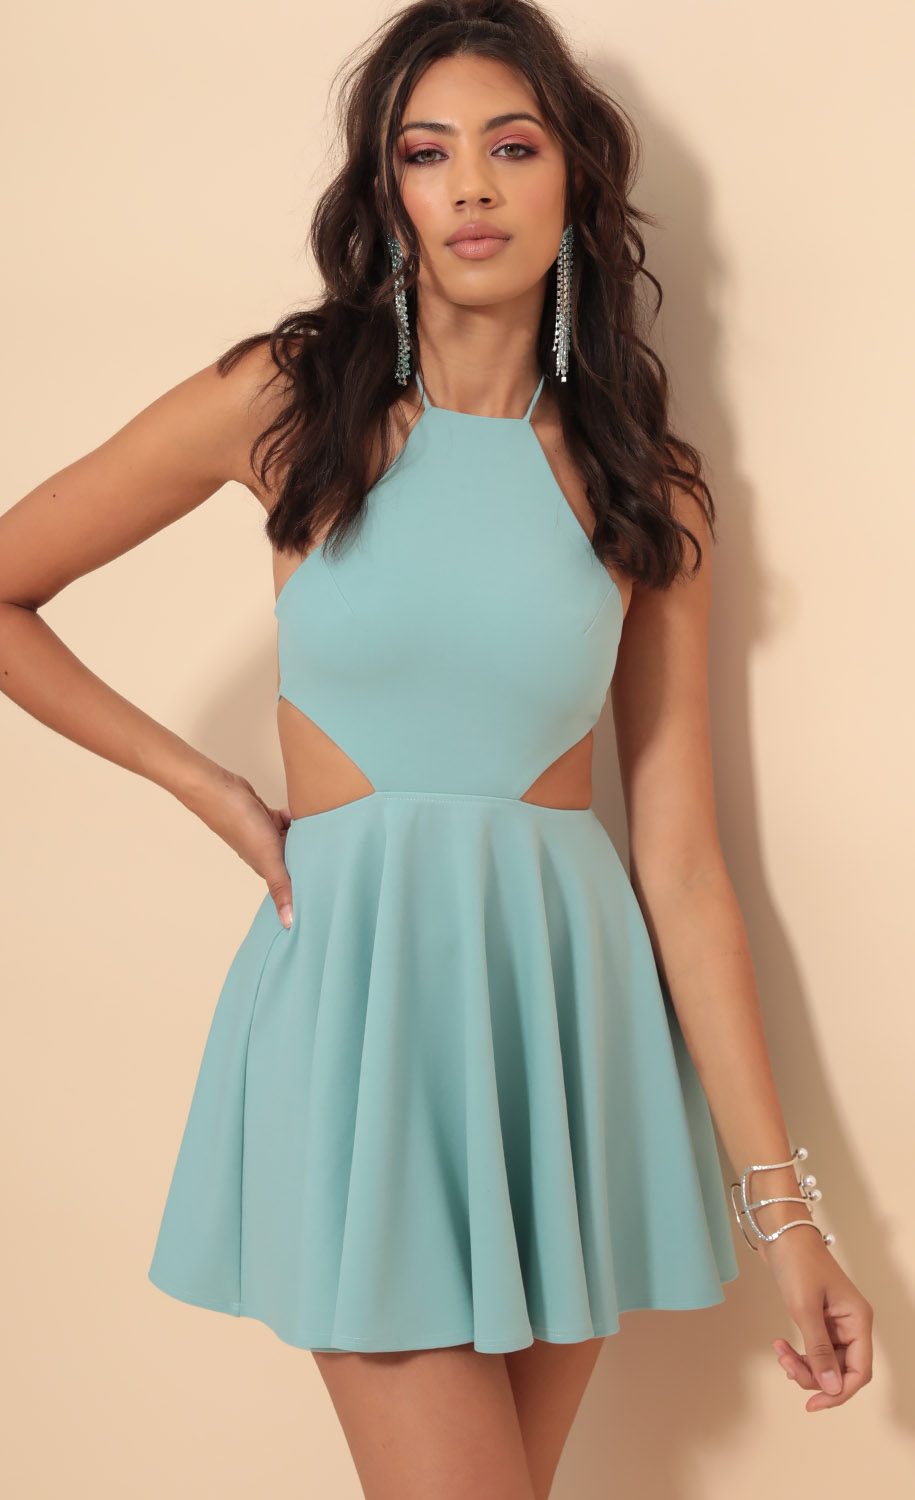 Brynn Halter Cutout A-line Dress in Turquoise